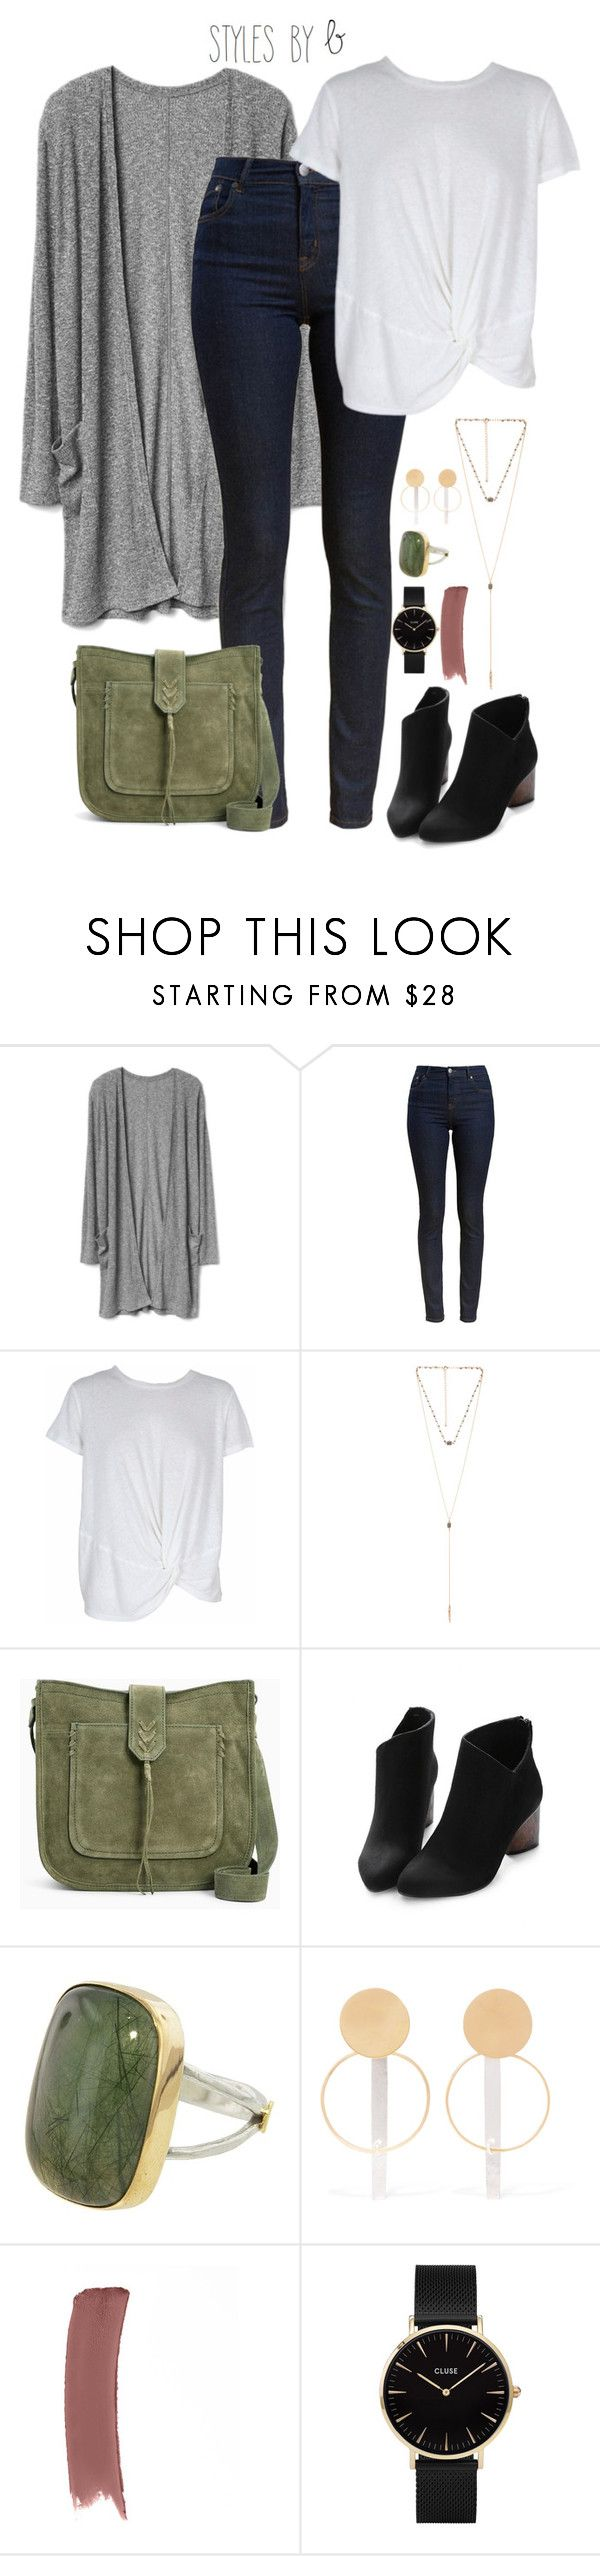 """""""Untitled #749"""" by bryanaellen ❤ liked on Polyvore featuring Barbour, MINKPINK, 8 Other Reasons, Annie Costello Brown, Gucci and CLUSE"""